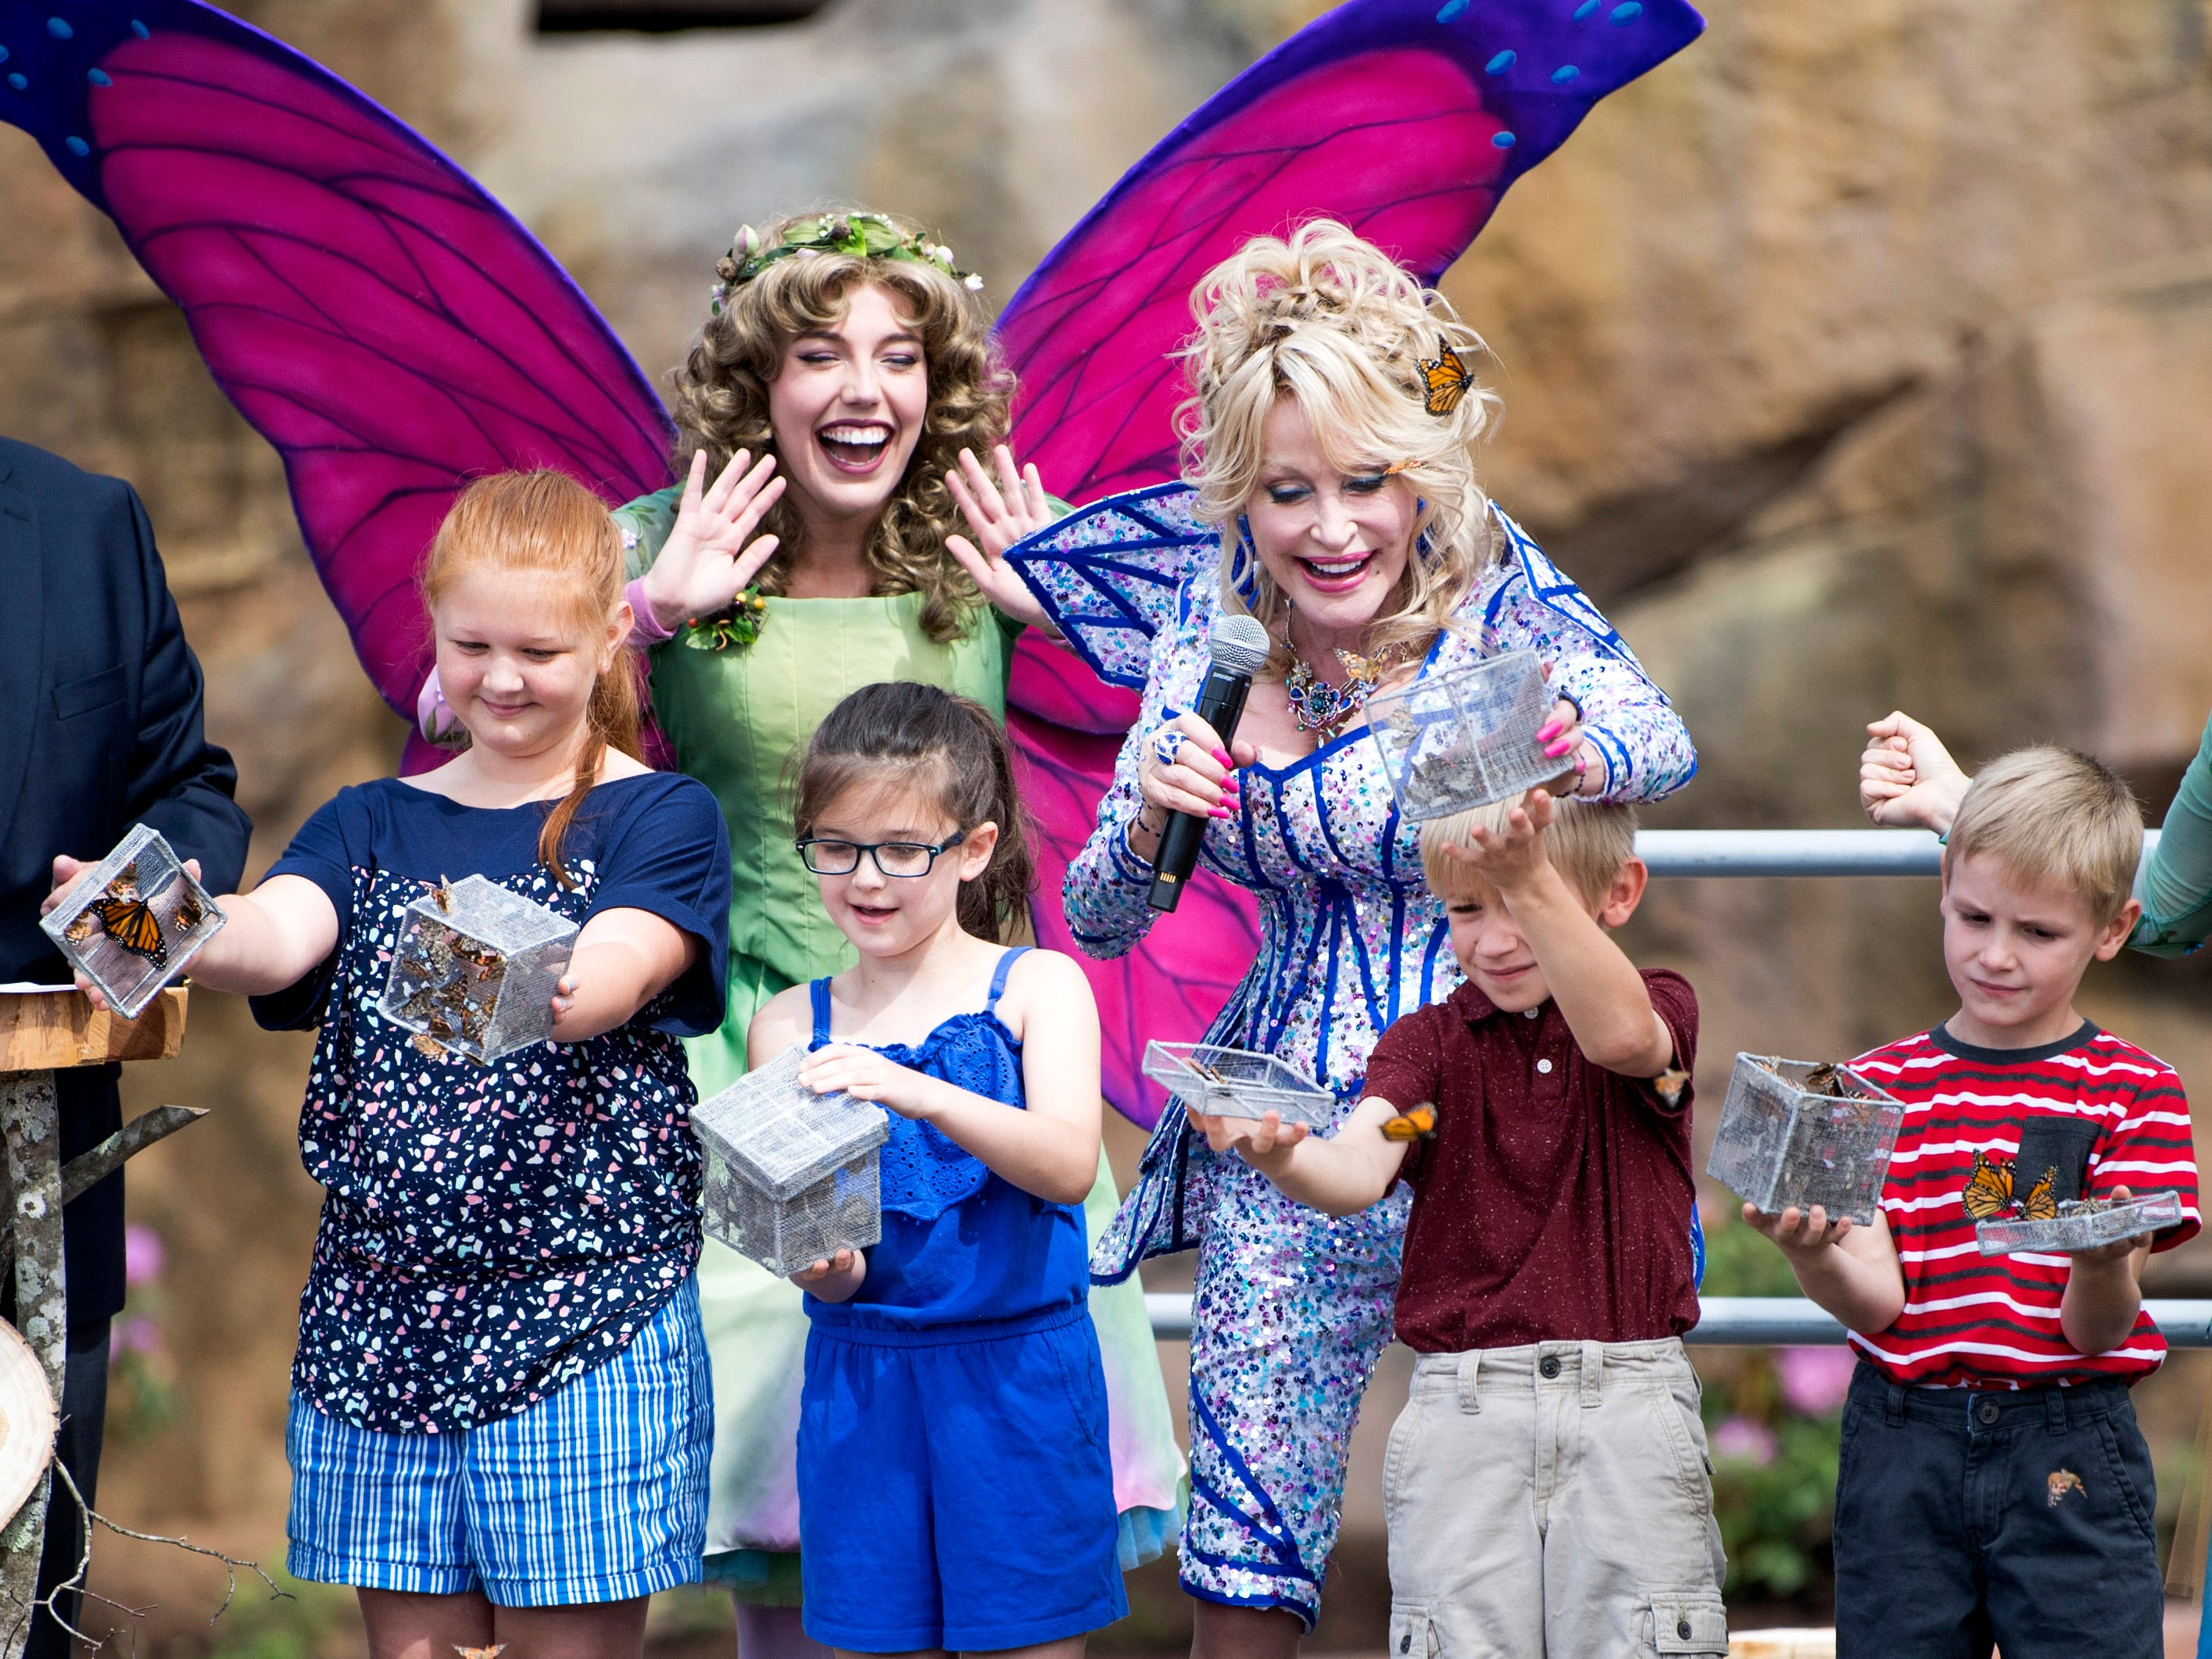 Dolly Parton opens Dollywood's Wildwood Grove. Here's how the new area stacks up